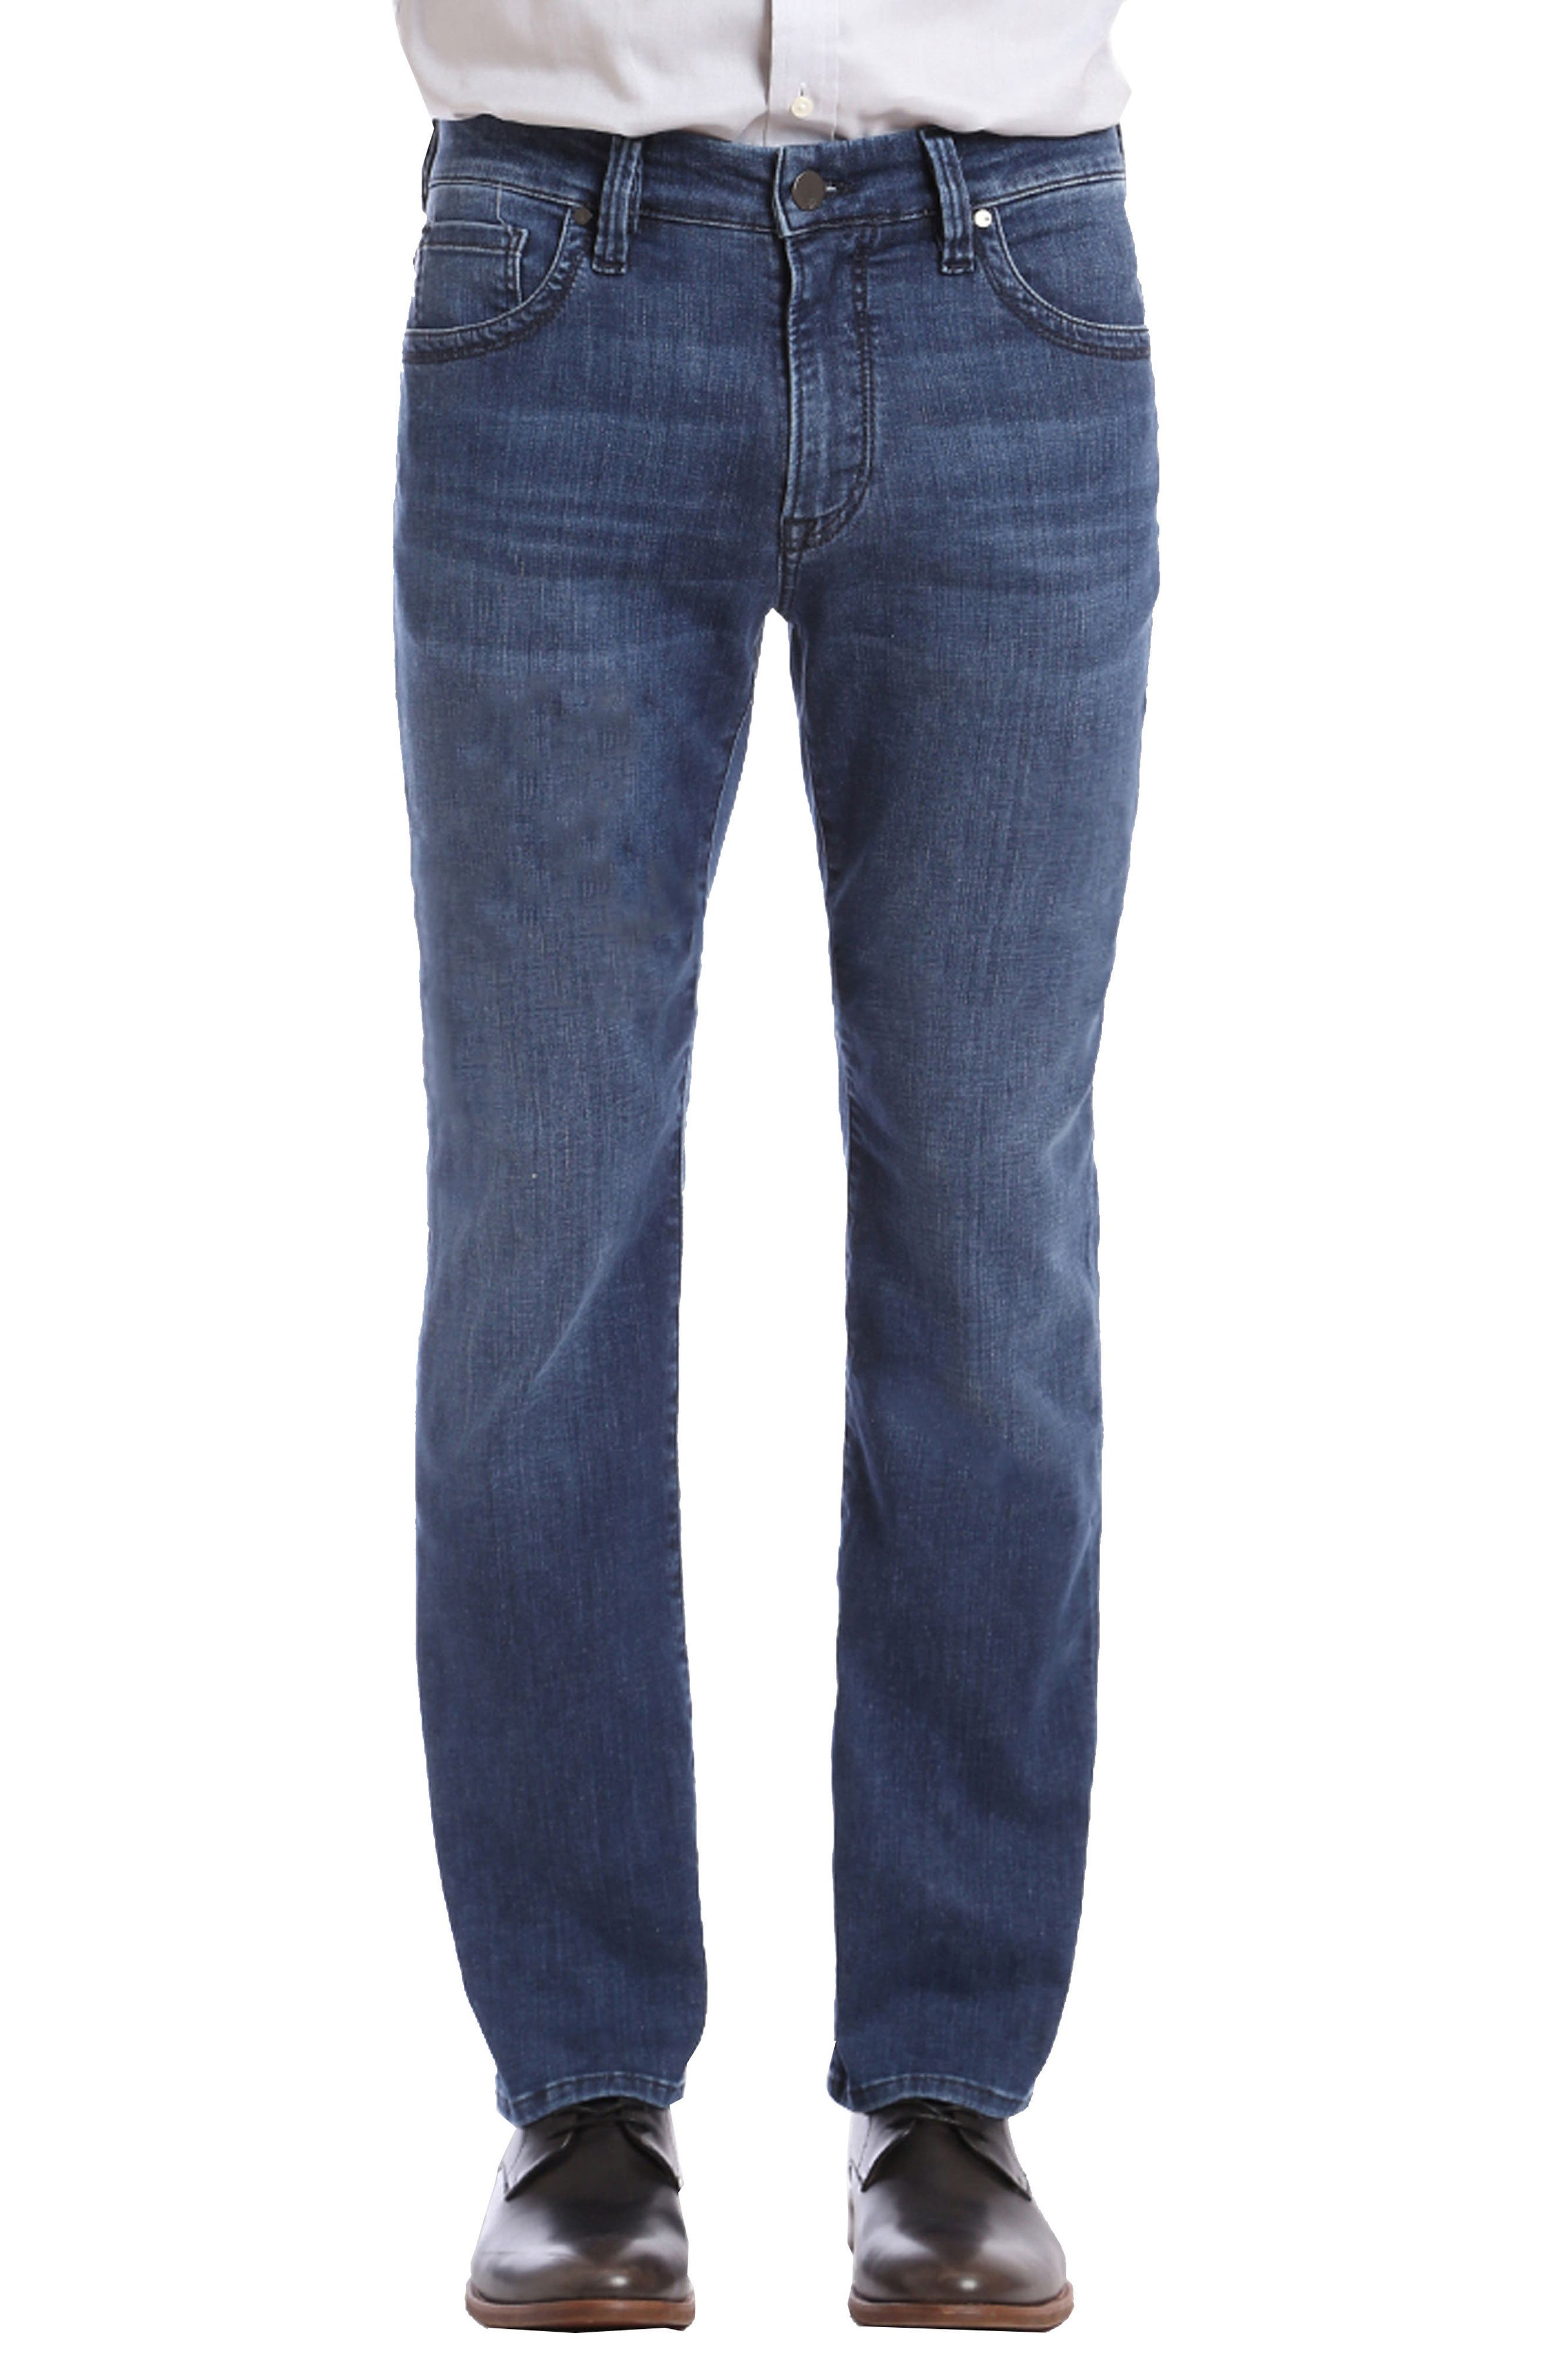 Courage Straight Fit Jeans,                             Main thumbnail 1, color,                             MID MILAN